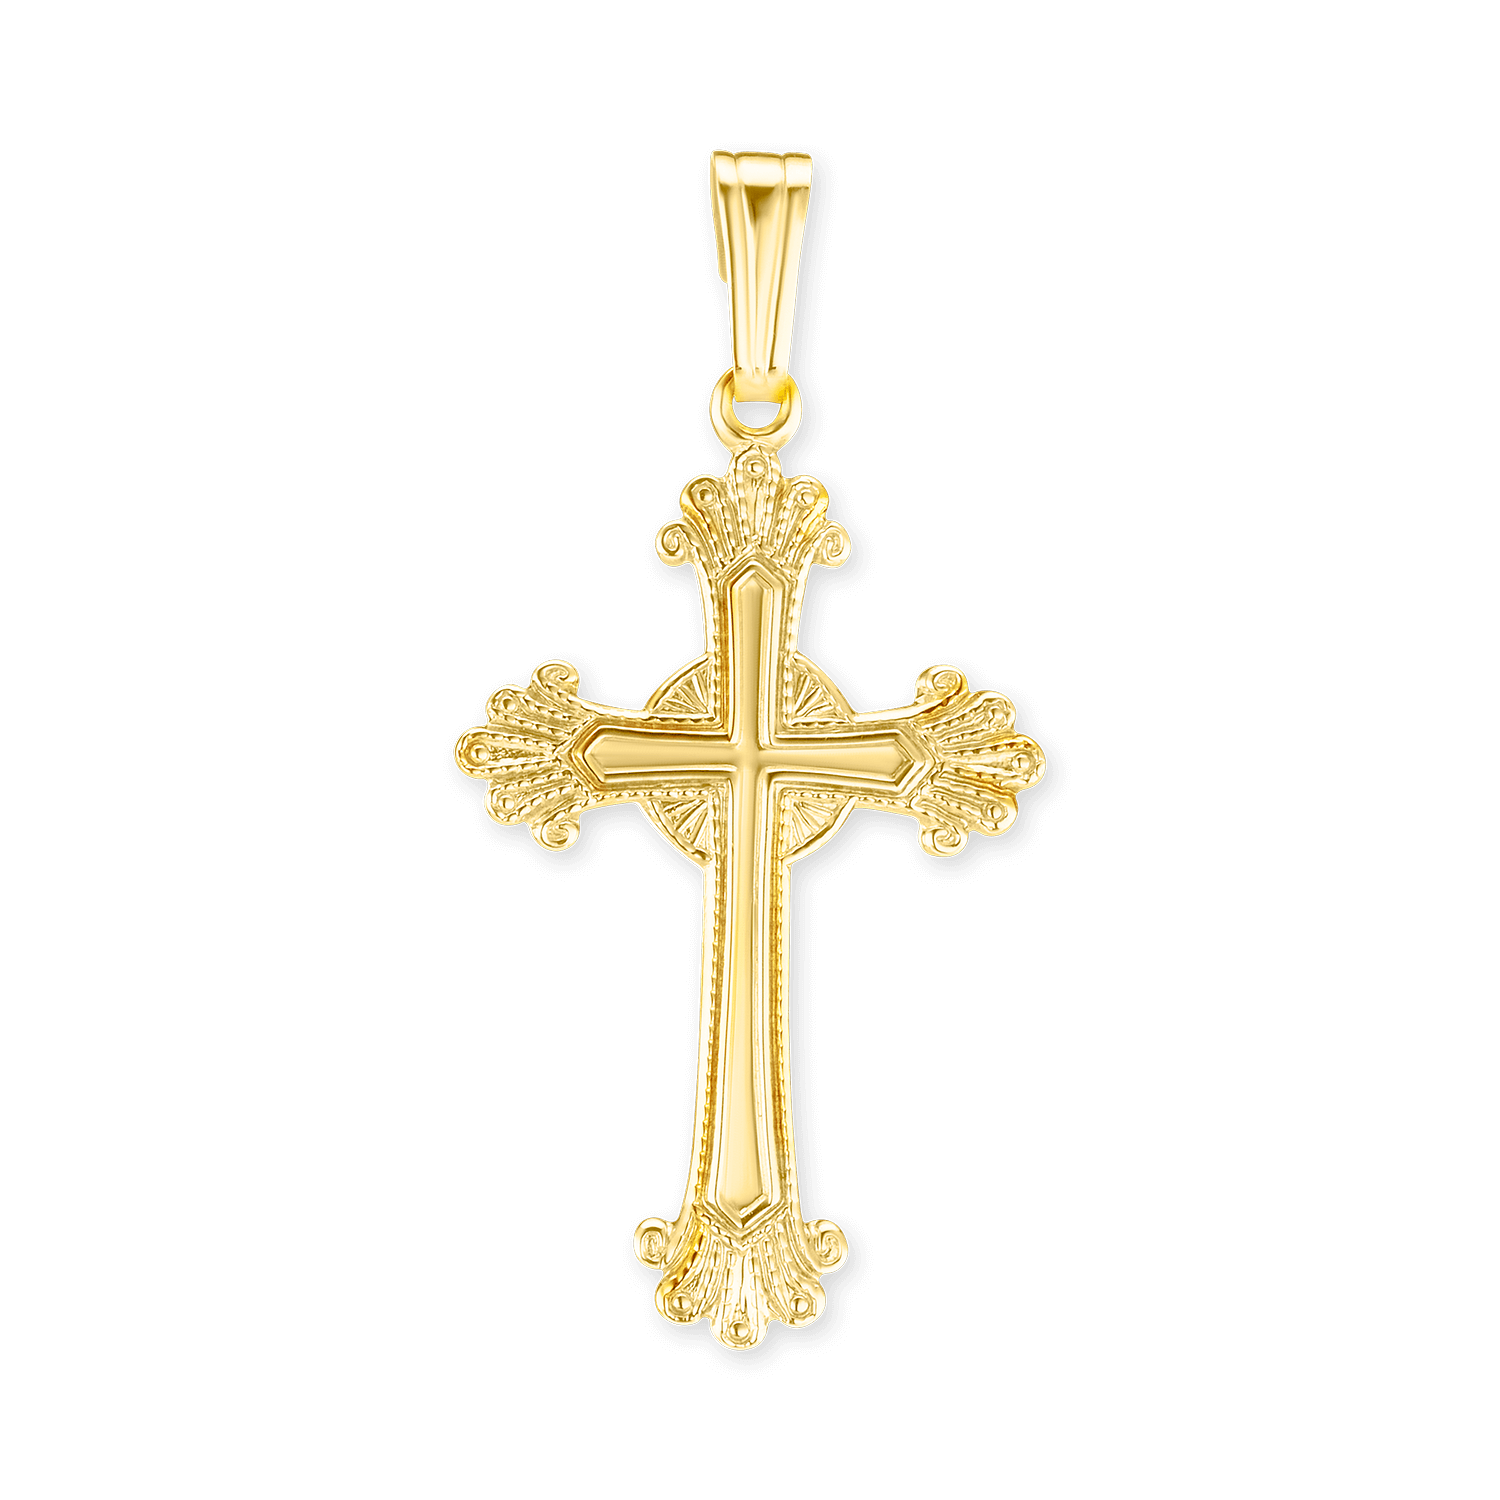 14K Gold Fancy Anglican Cross (34 x 16mm)